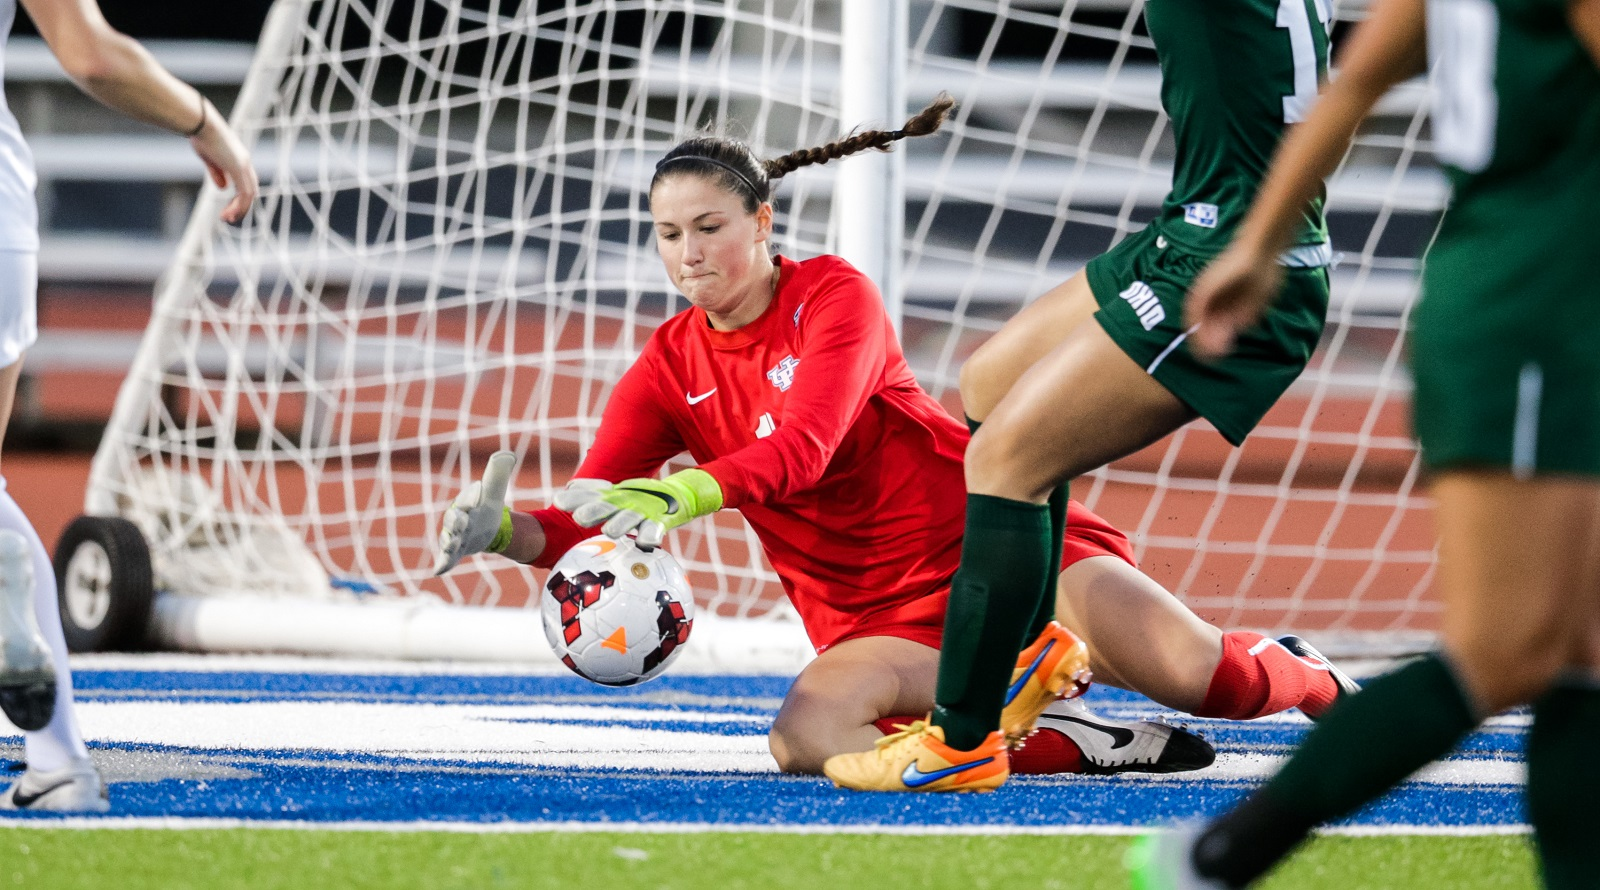 University at Buffalo goalkeeper Laura Dougall has been invited to training camp for the Trinidad & Tobago National Team. (UB Athletics)